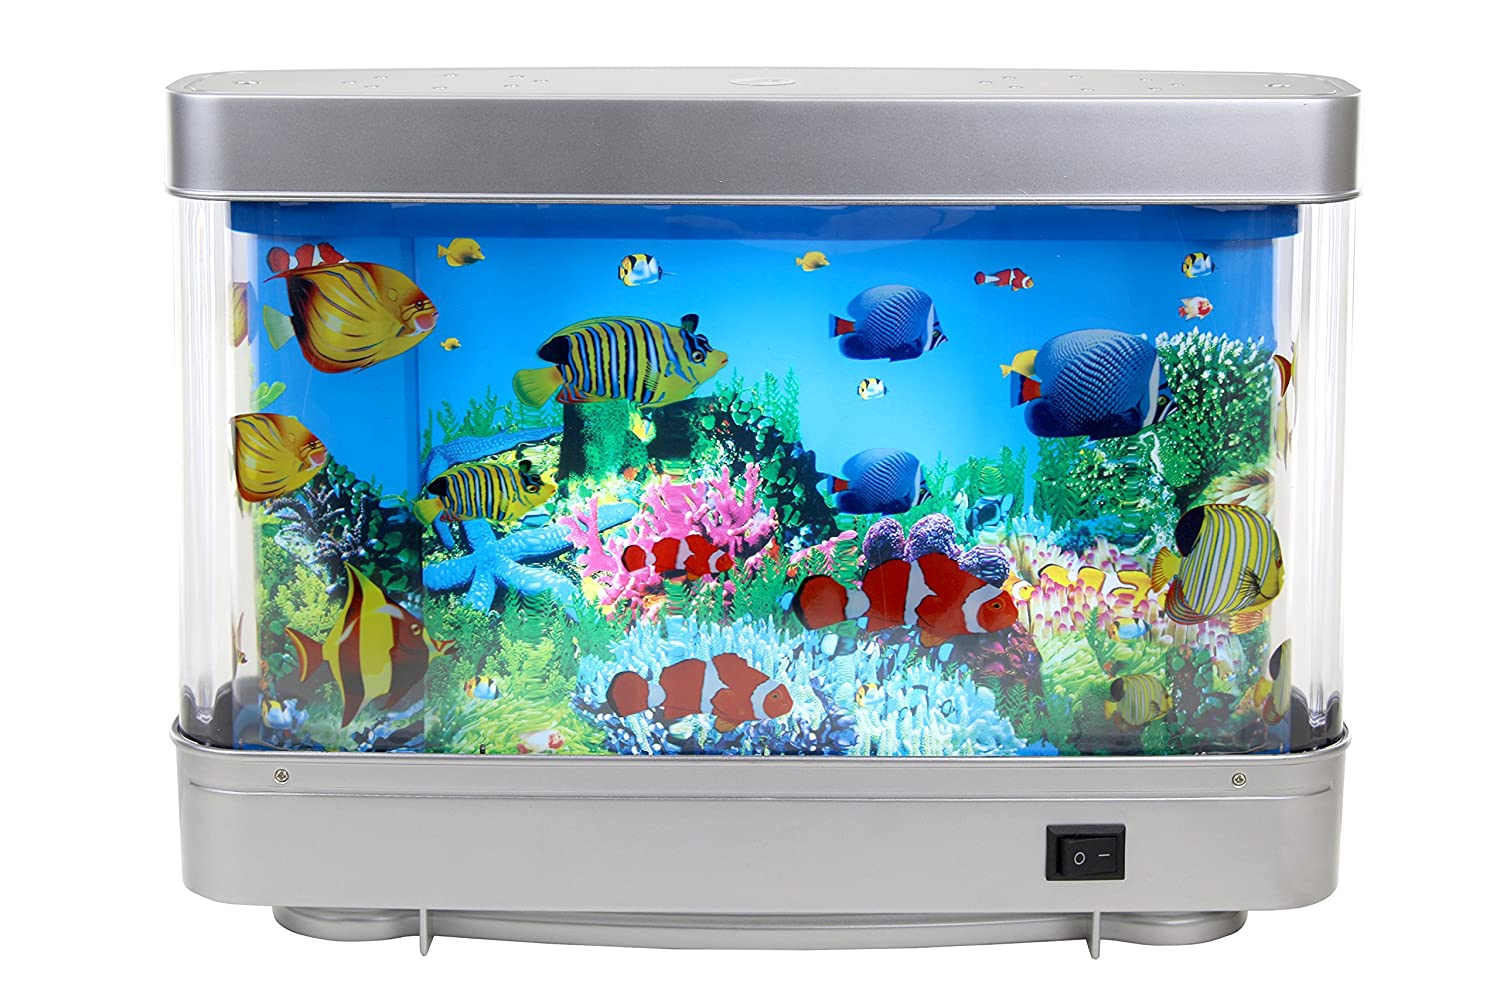 Fish tank night light - Amazon Com Lightahead Artificial Tropical Fish Aquarium Decorative Lamp With Multi Colored Artificial Fish And Ocean In Motion Pet Supplies